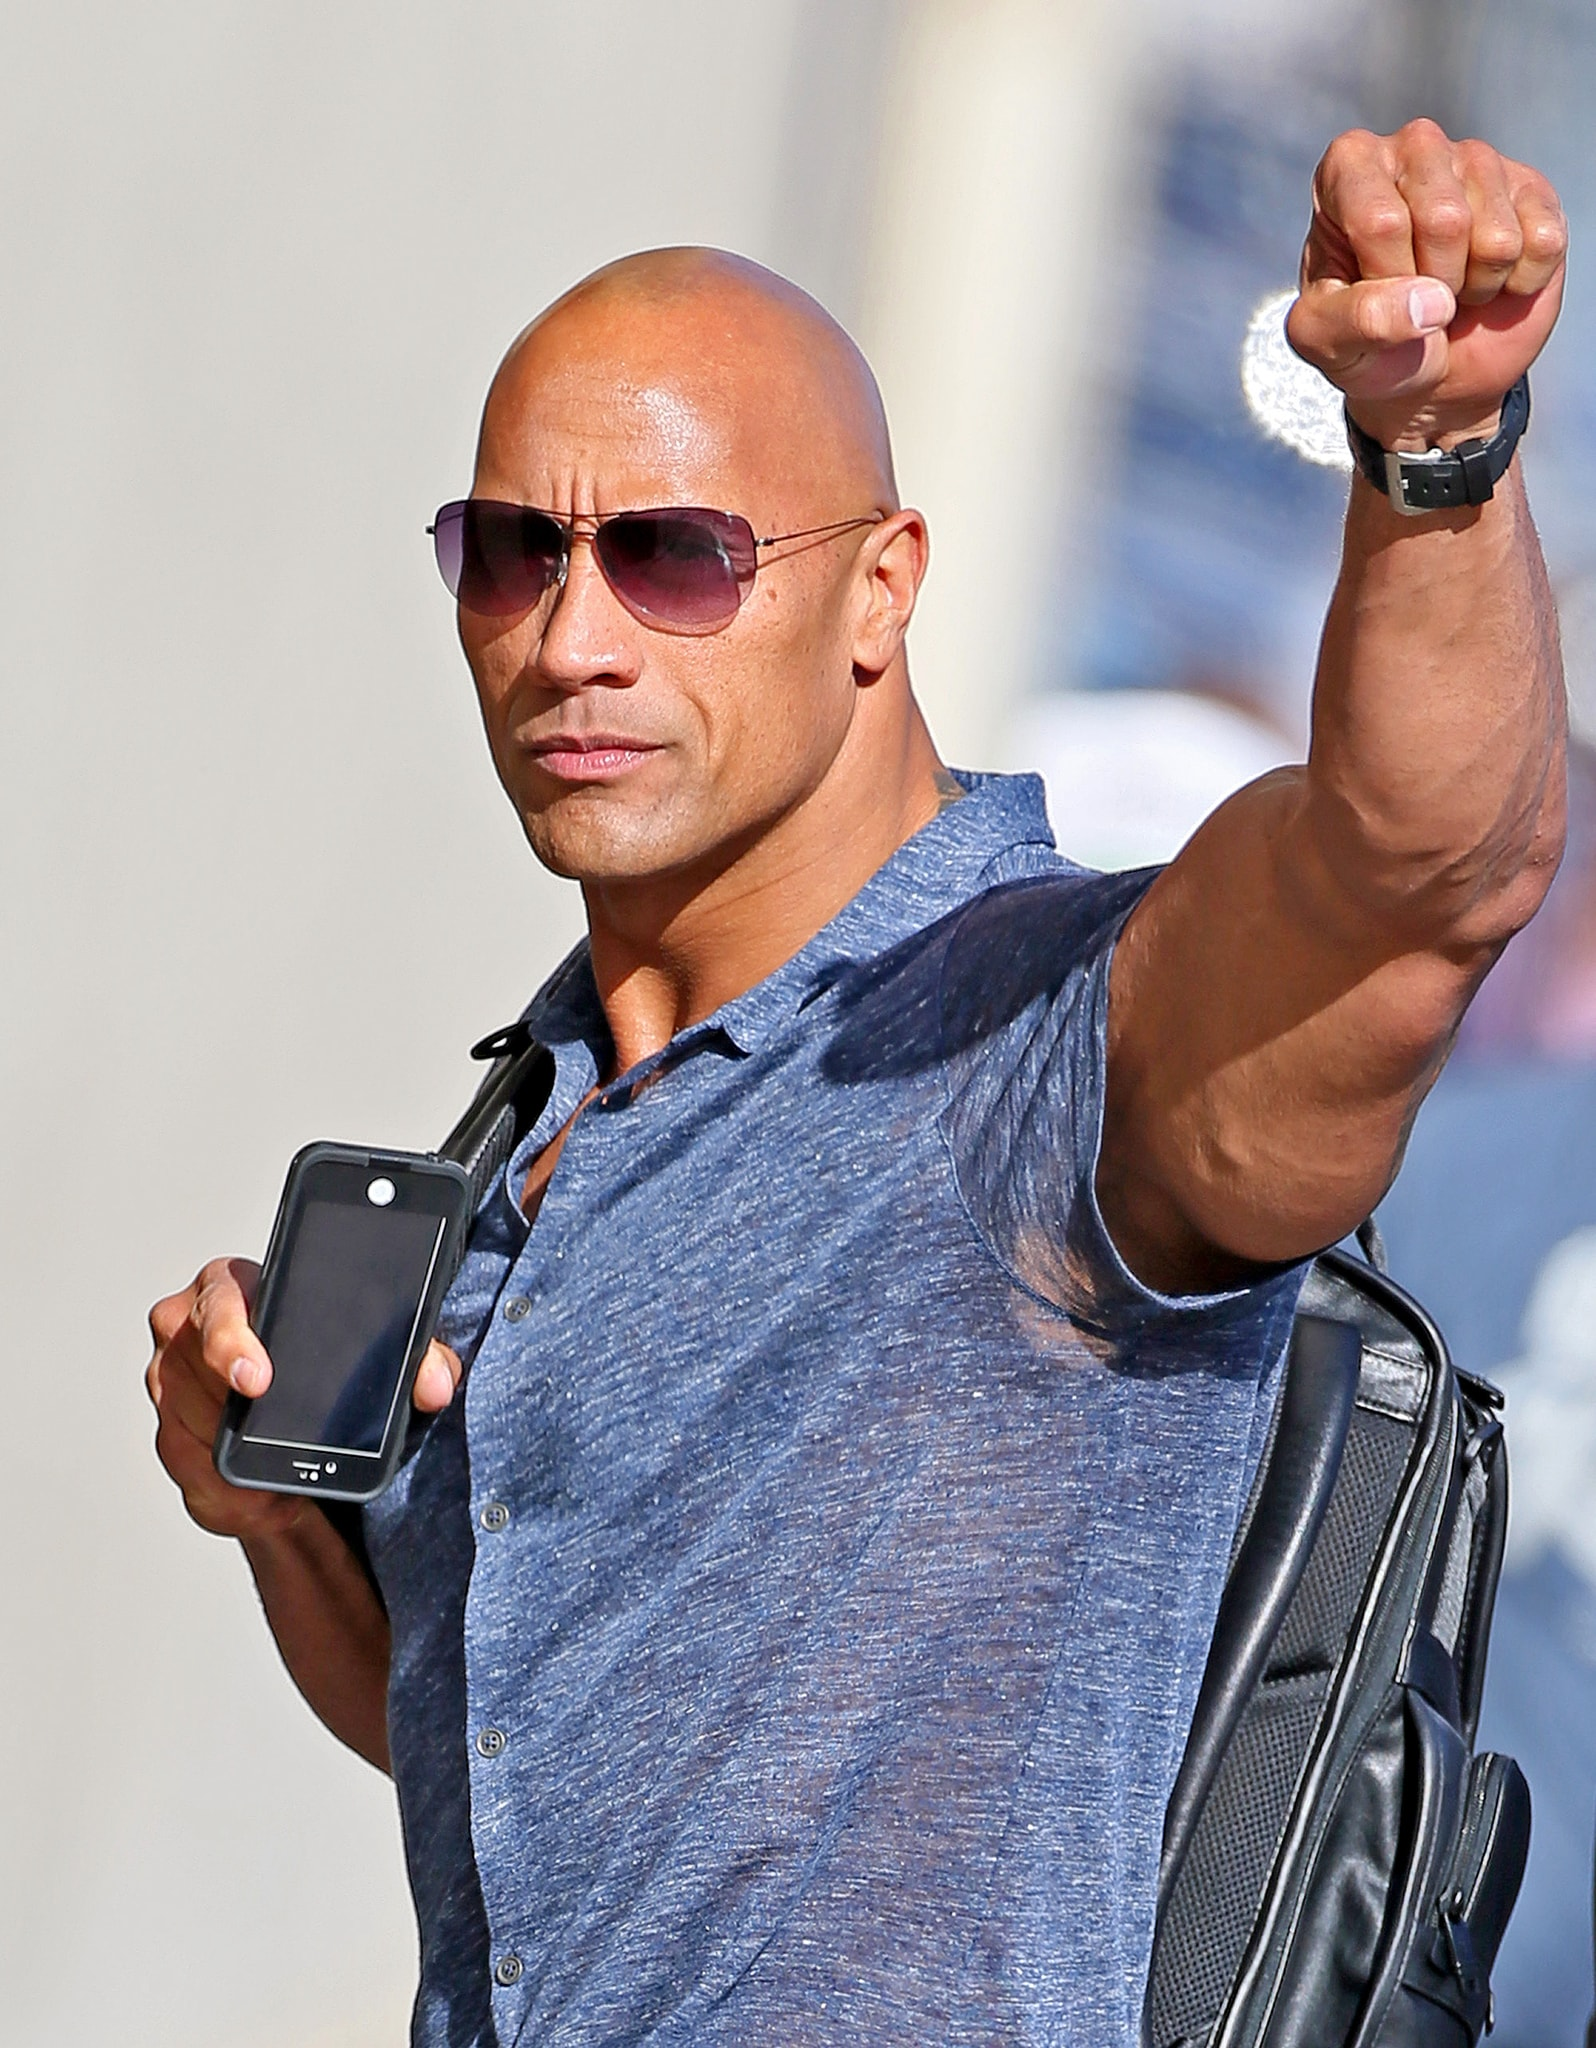 dwayne douglas johnson usa esteroides